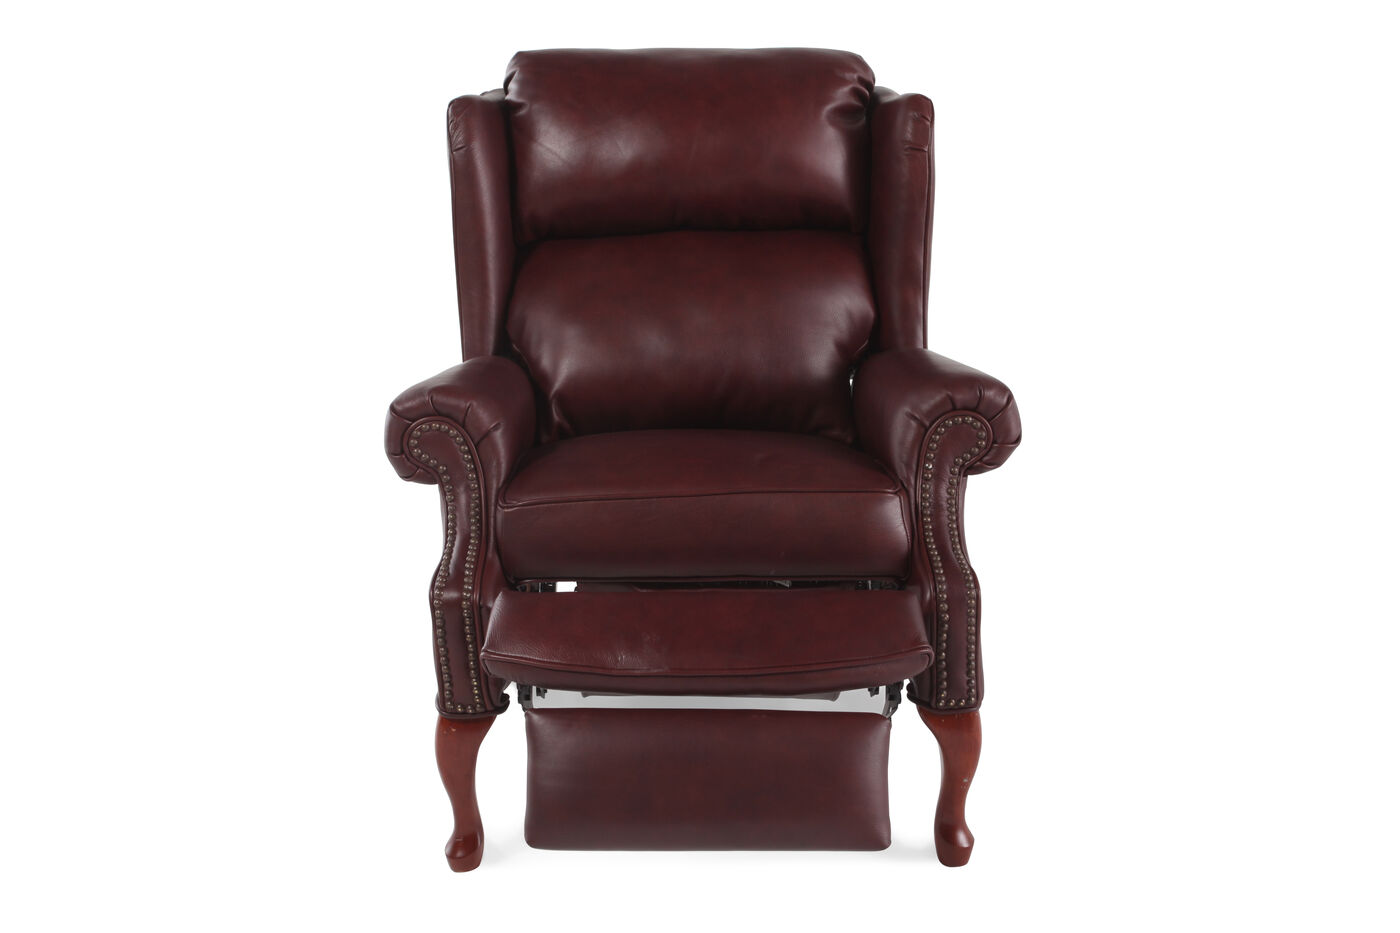 Lane savannah leather recliner mathis brothers furniture for Chair recliner